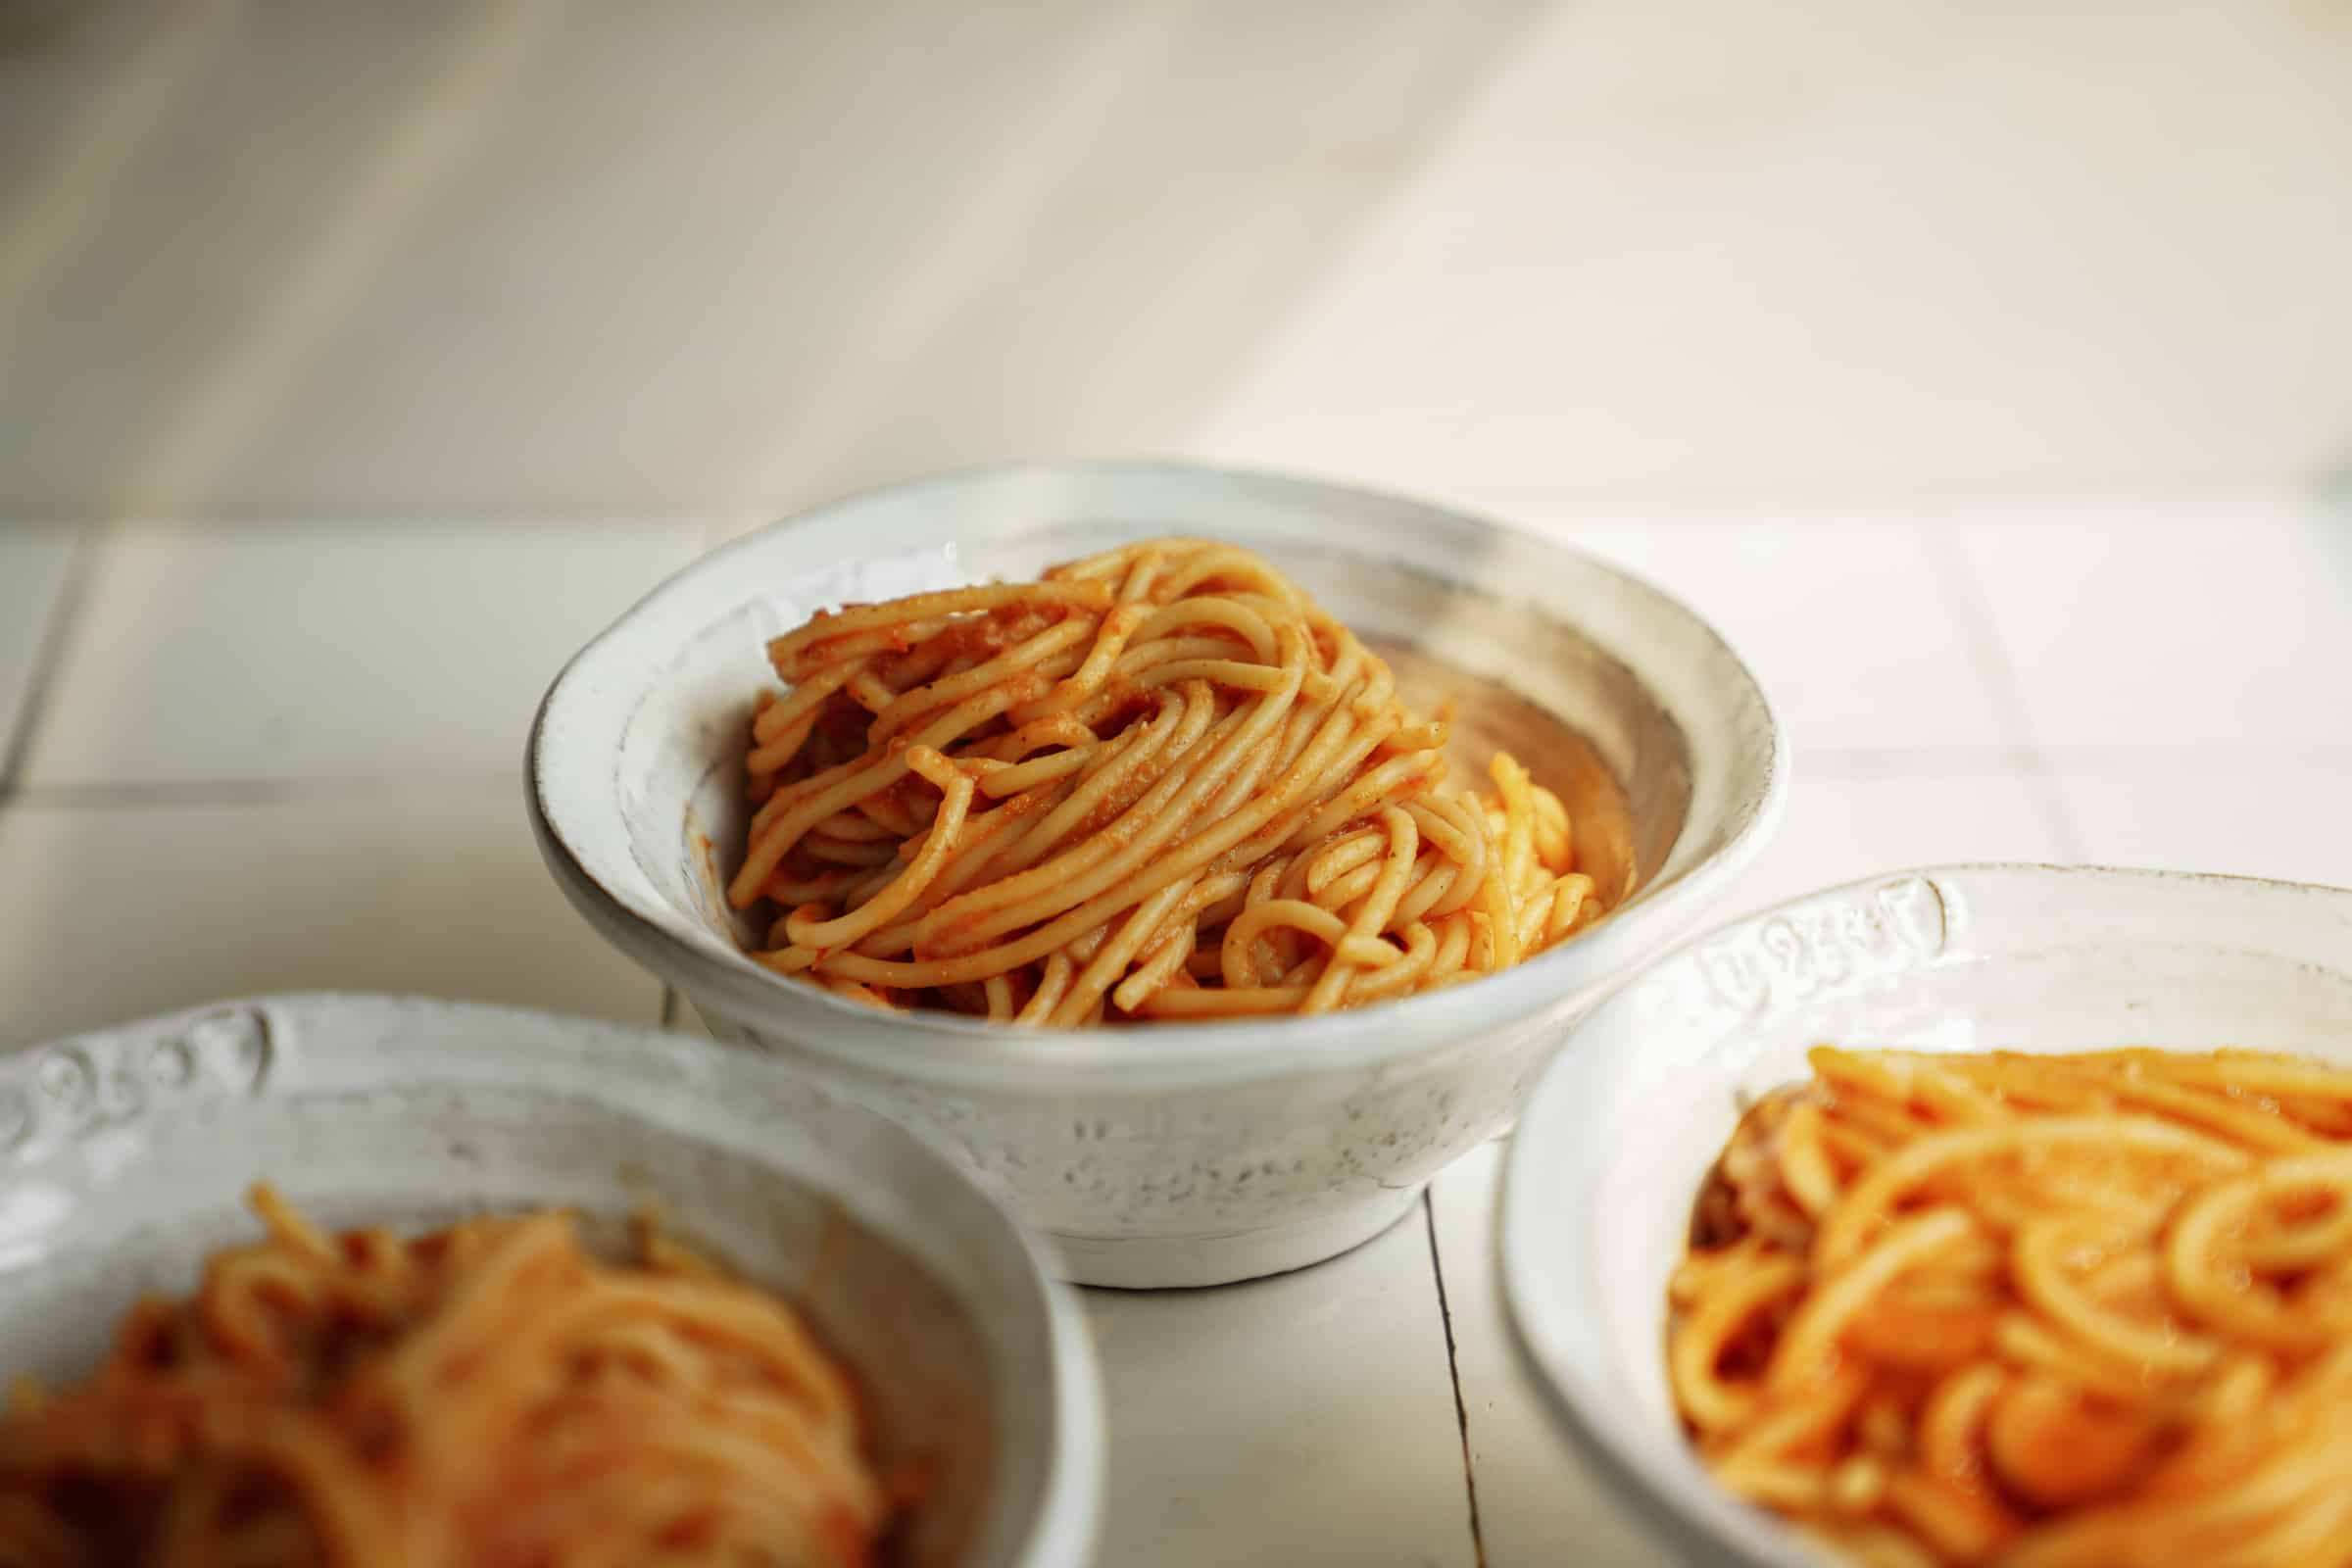 Bowls of spaghetti with Greek pasta sauce on it